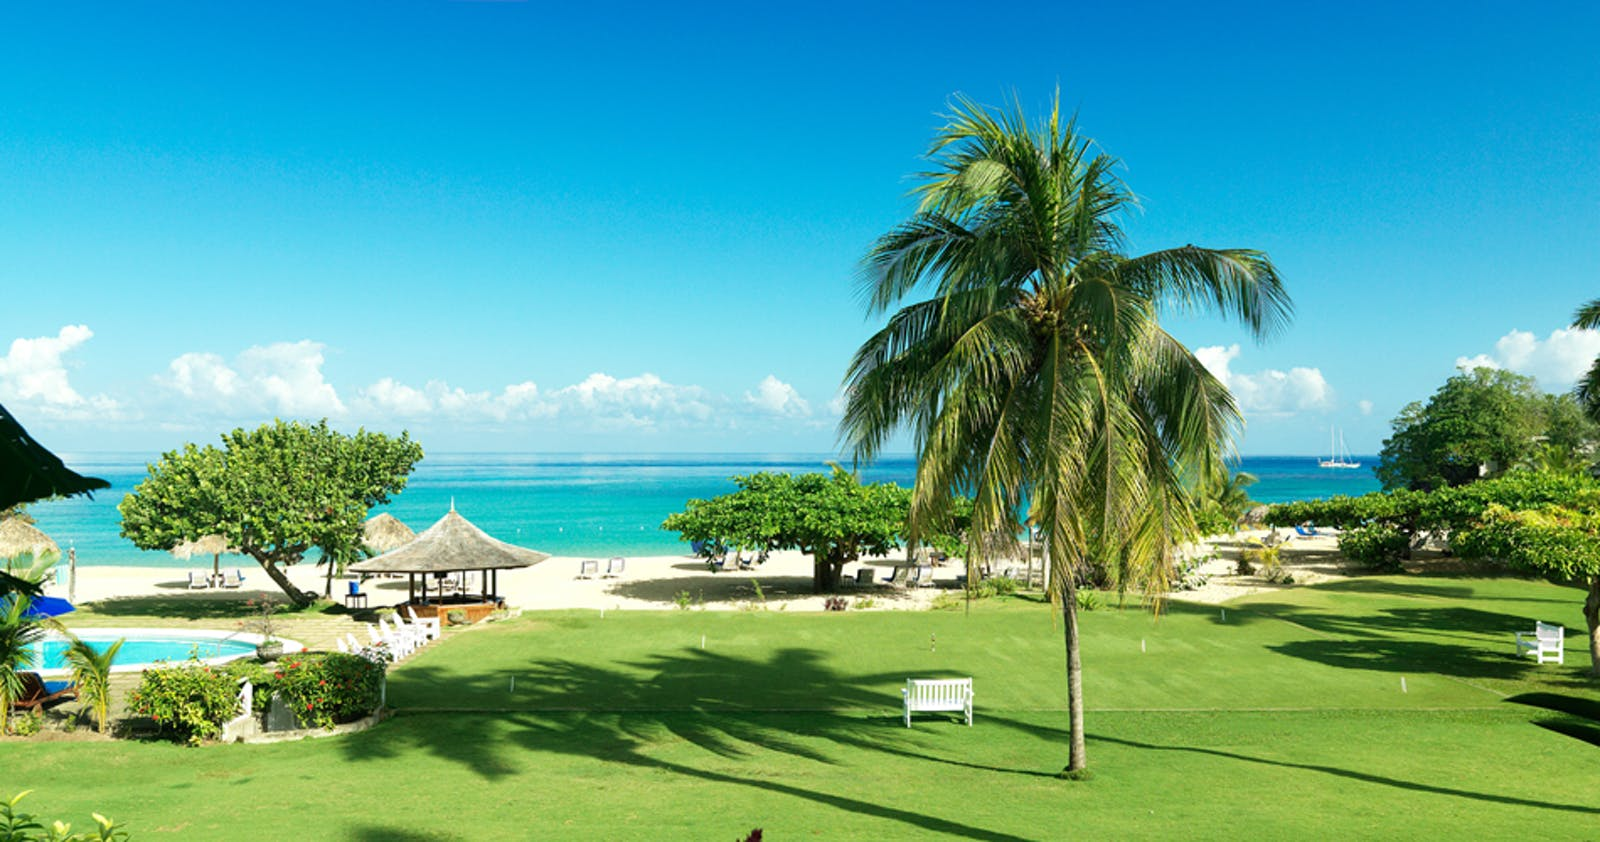 Beach at Jamaica Inn, Jamaica